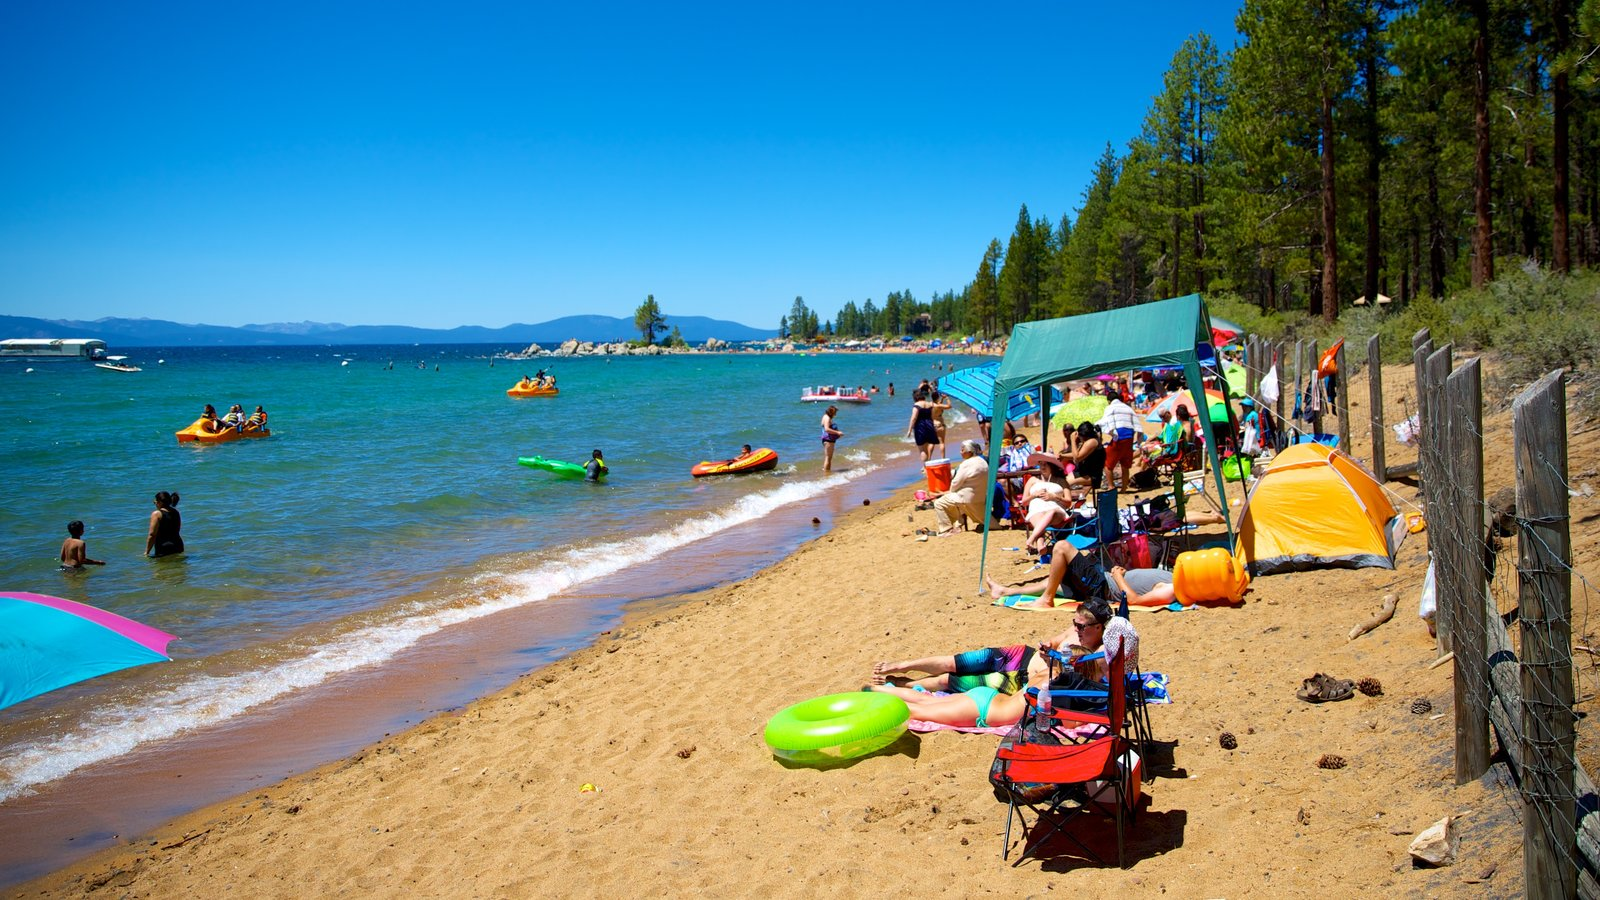 Zephyr Cove Beach Showing A And Swimming As Well Large Group Of People